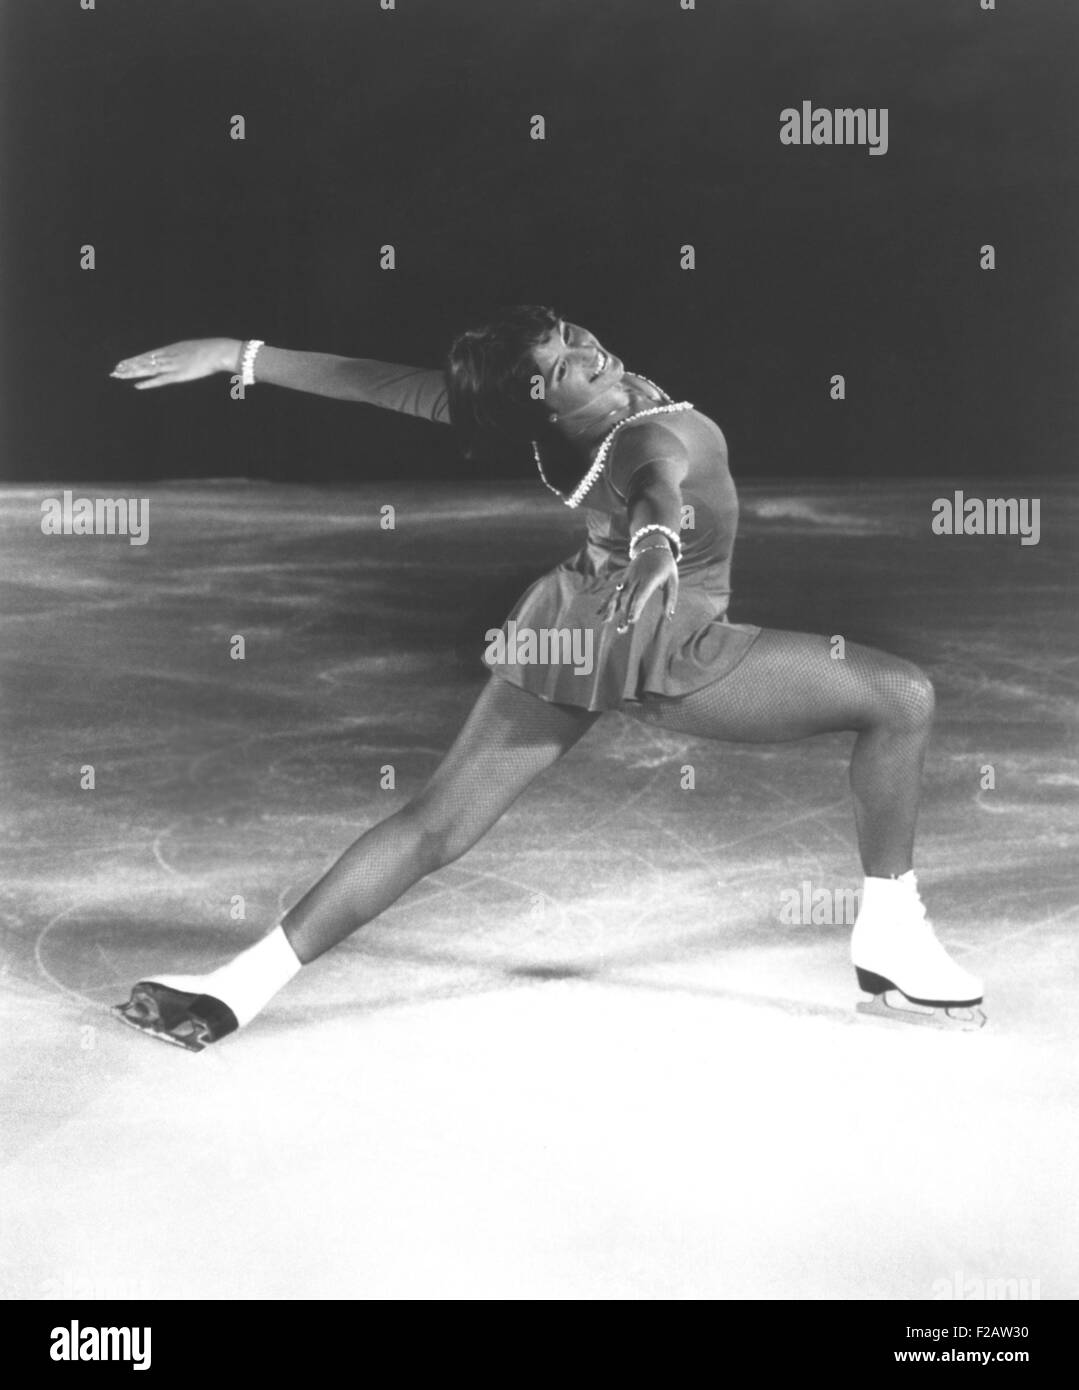 Dorothy Hamill, star skater, performs a 'Ina Bauer' move. 1976 Olympic Gold Medalist skated in ICE CAPADES - Stock Image